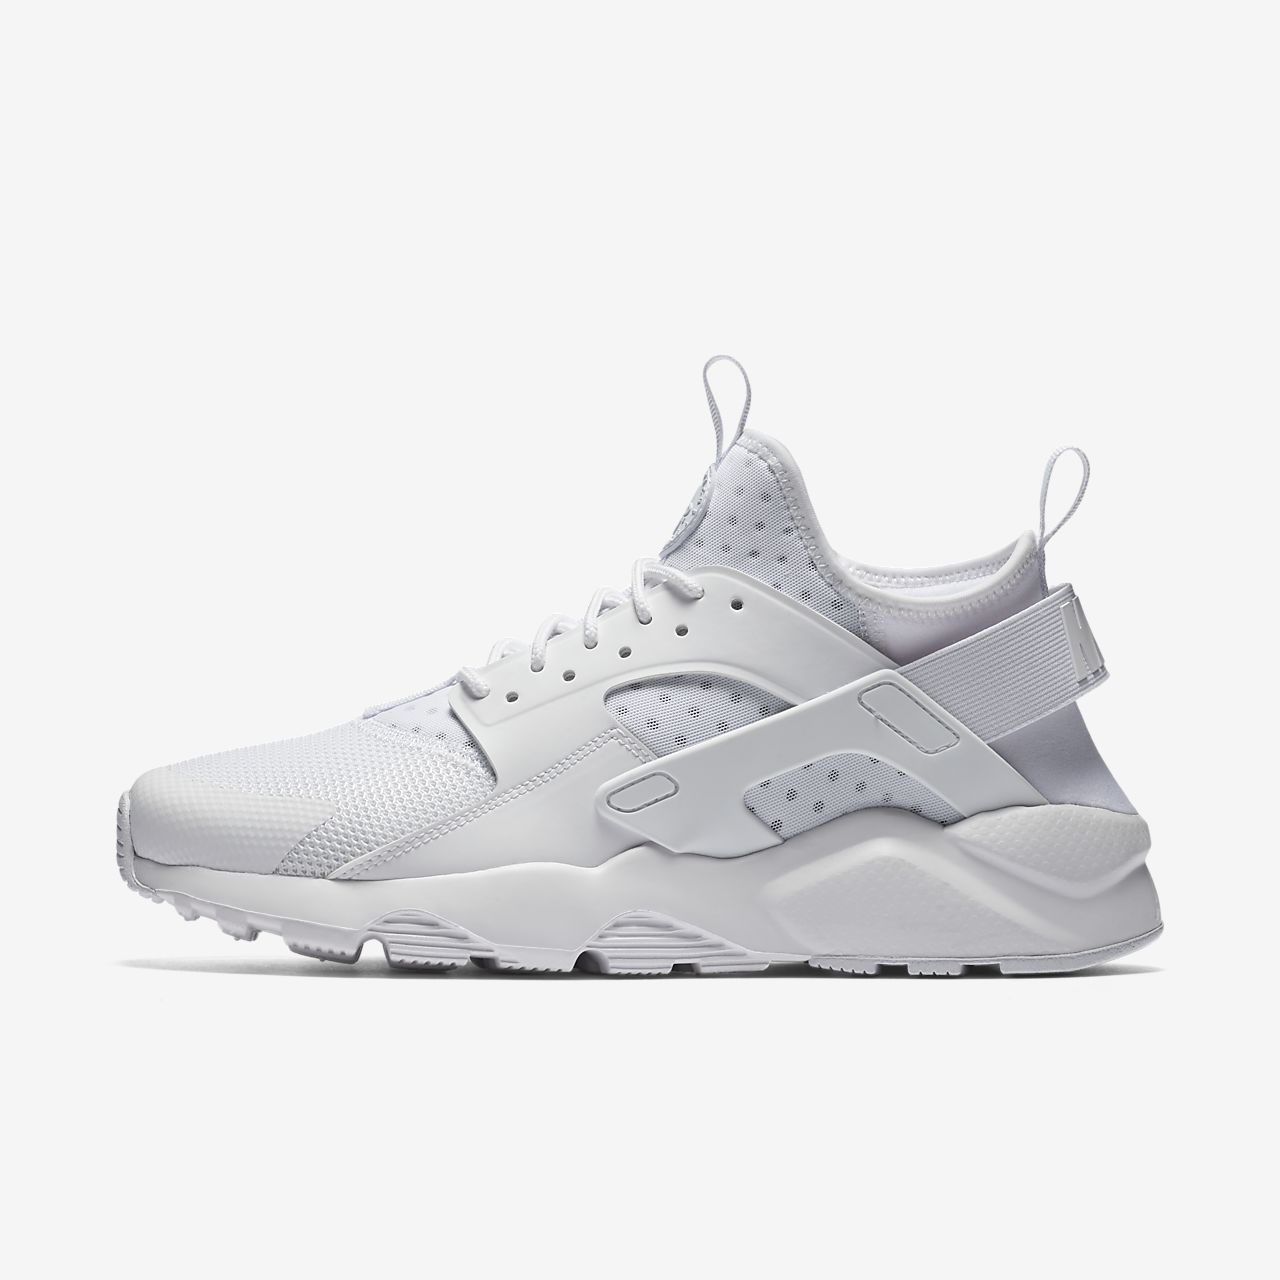 66b0e8efad9 Nike Air Huarache Ultra Men s Shoe. Nike.com DK